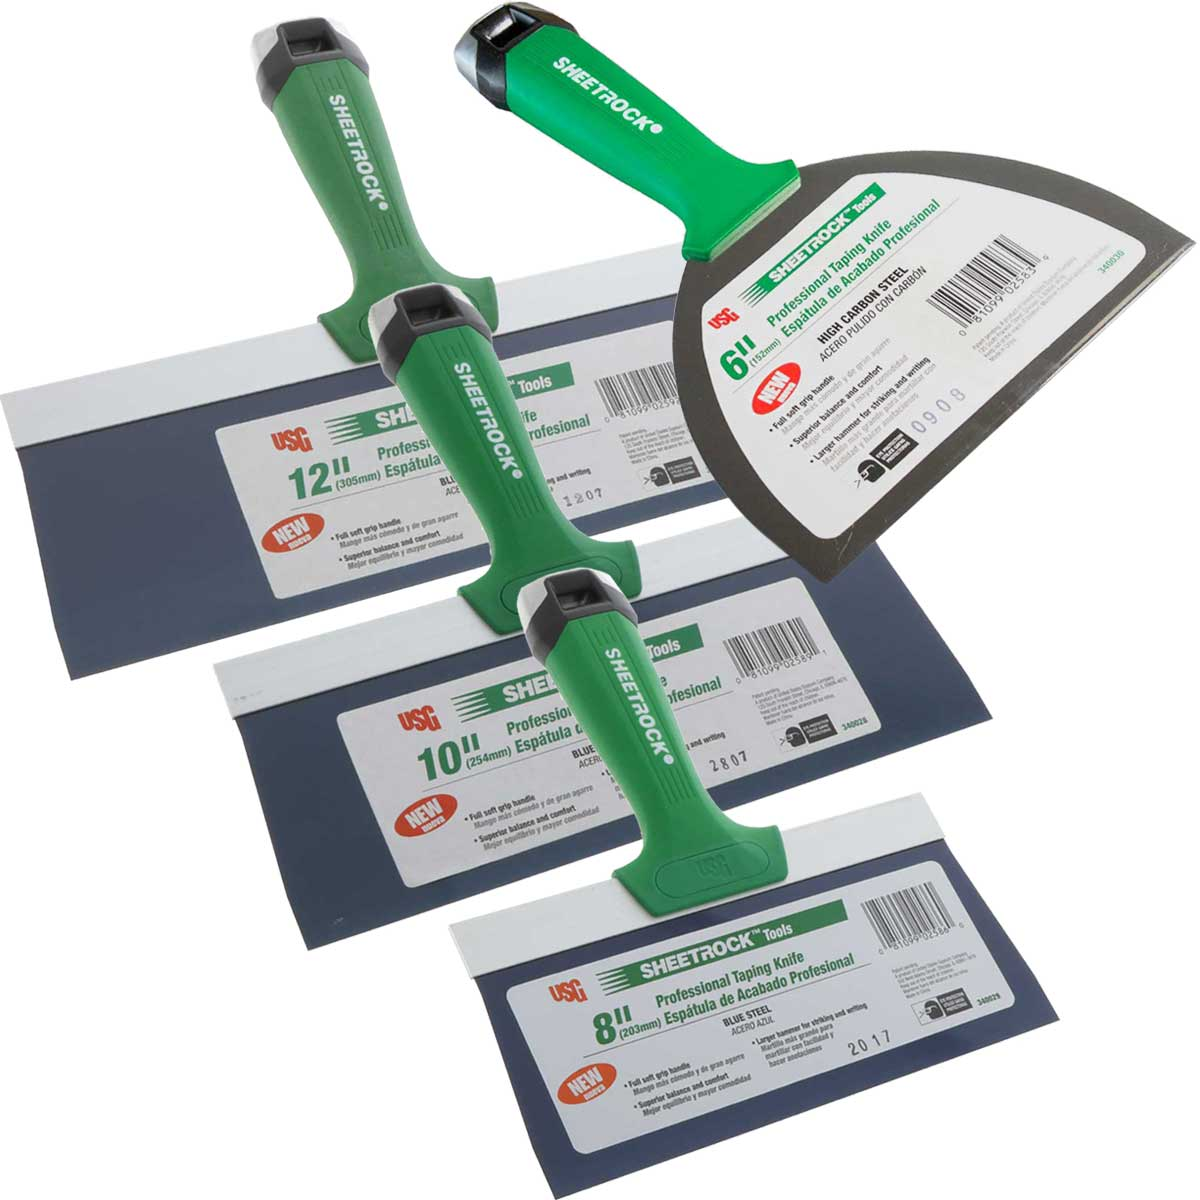 USG Sheetrock Pro Series Taping Knife Set 6-8-10-12